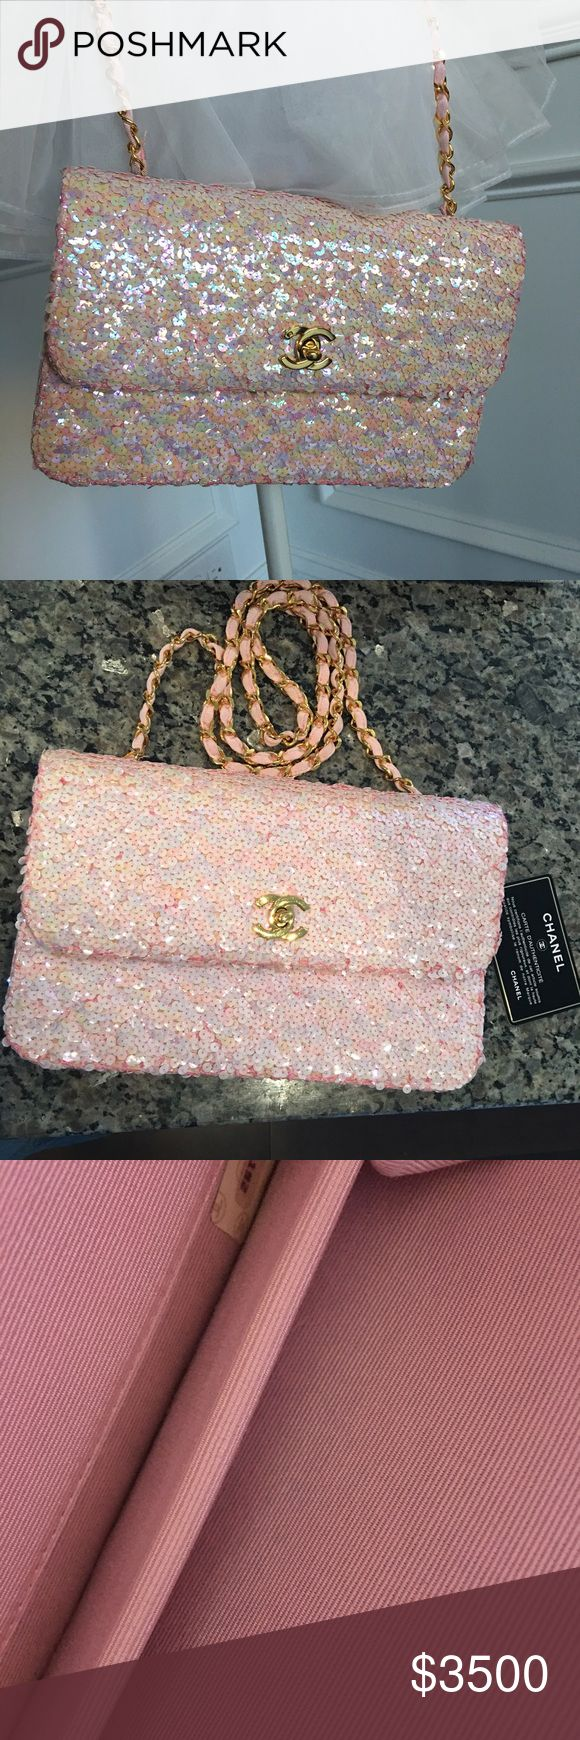 """Authentic Chanel vintage pink sequin flap bag This is a very rare and hard to find vintage Chanel sequin medium flap bag. Length is 10, depth is 1.5, and height is 6.5. The drop chain strap is 20"""". The gold hardware is gold plated and beautiful with hairline scratches. This is in good condition with some sequins missing. The bag inside has a one line mark but basically clean. This sparkles beautifully, and is a show stopper!! You can put iPhone , wallet and keys . Price is firm. This comes…"""